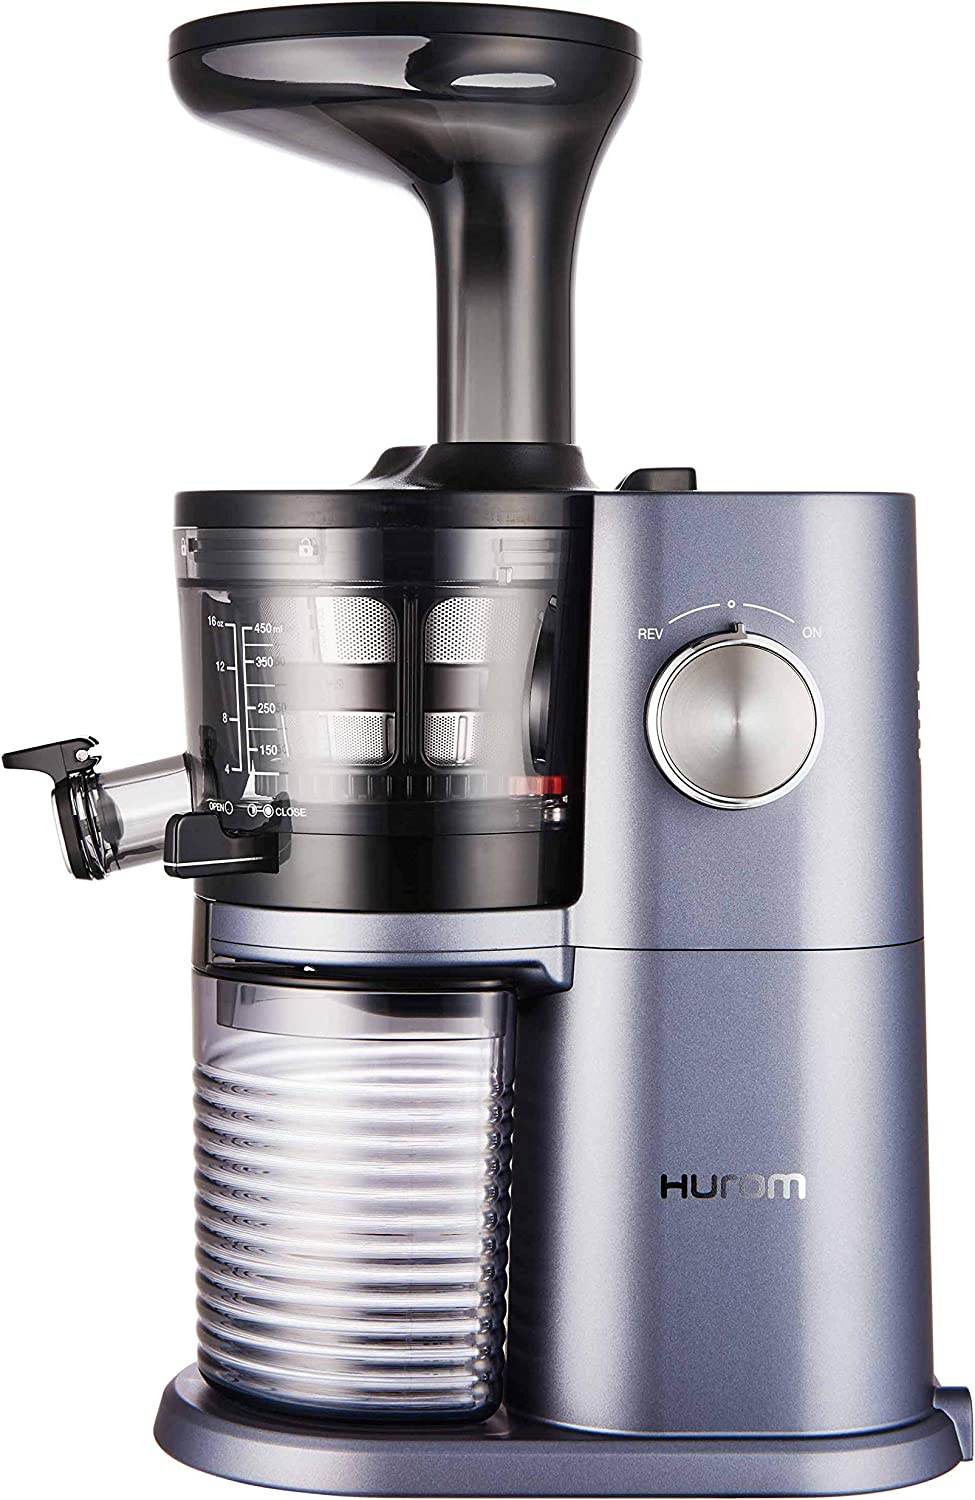 The best juicers you need to check out